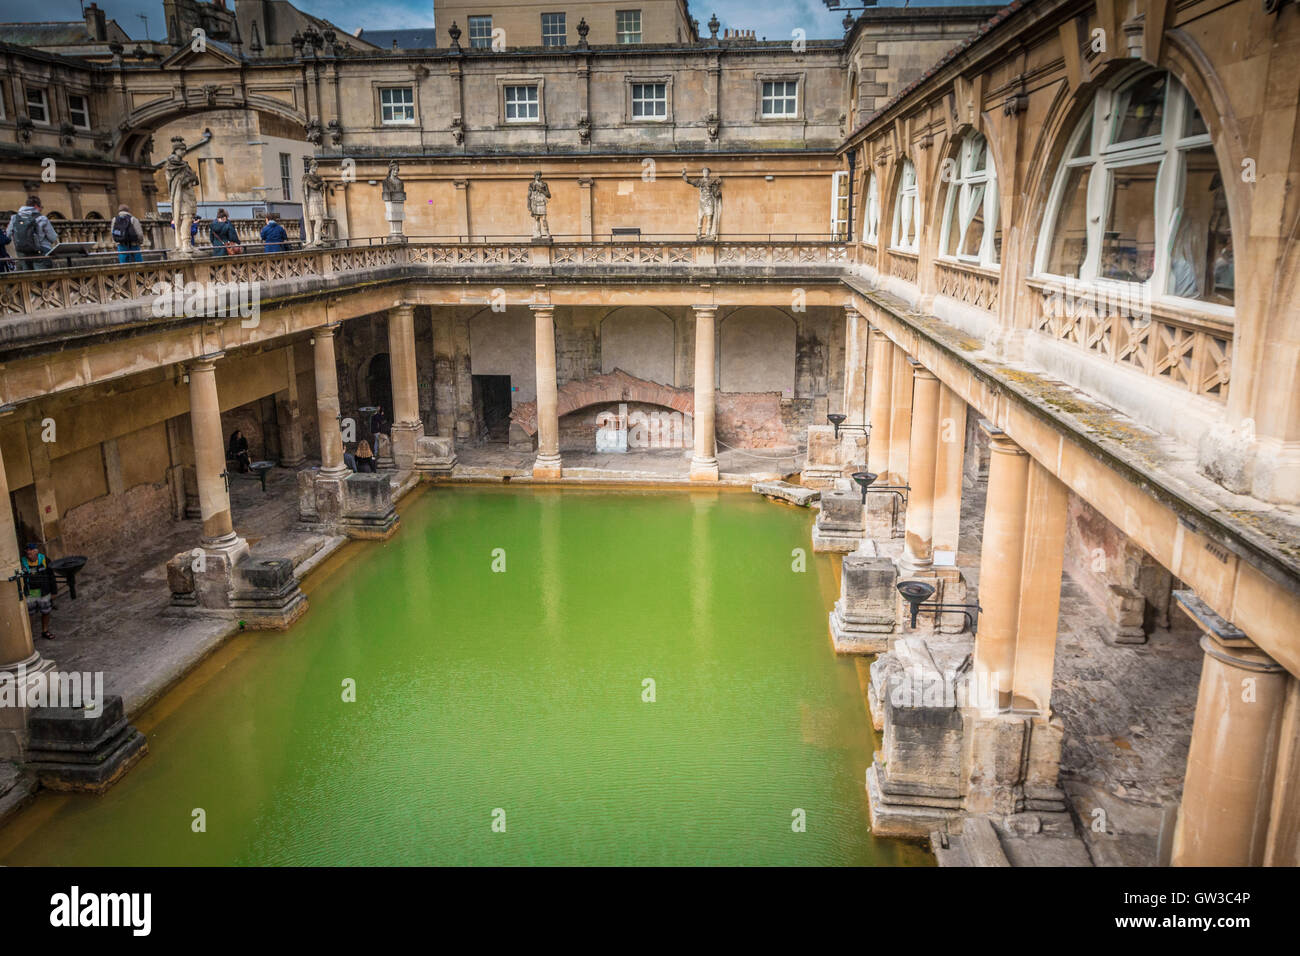 Thermal Pool In Bath England